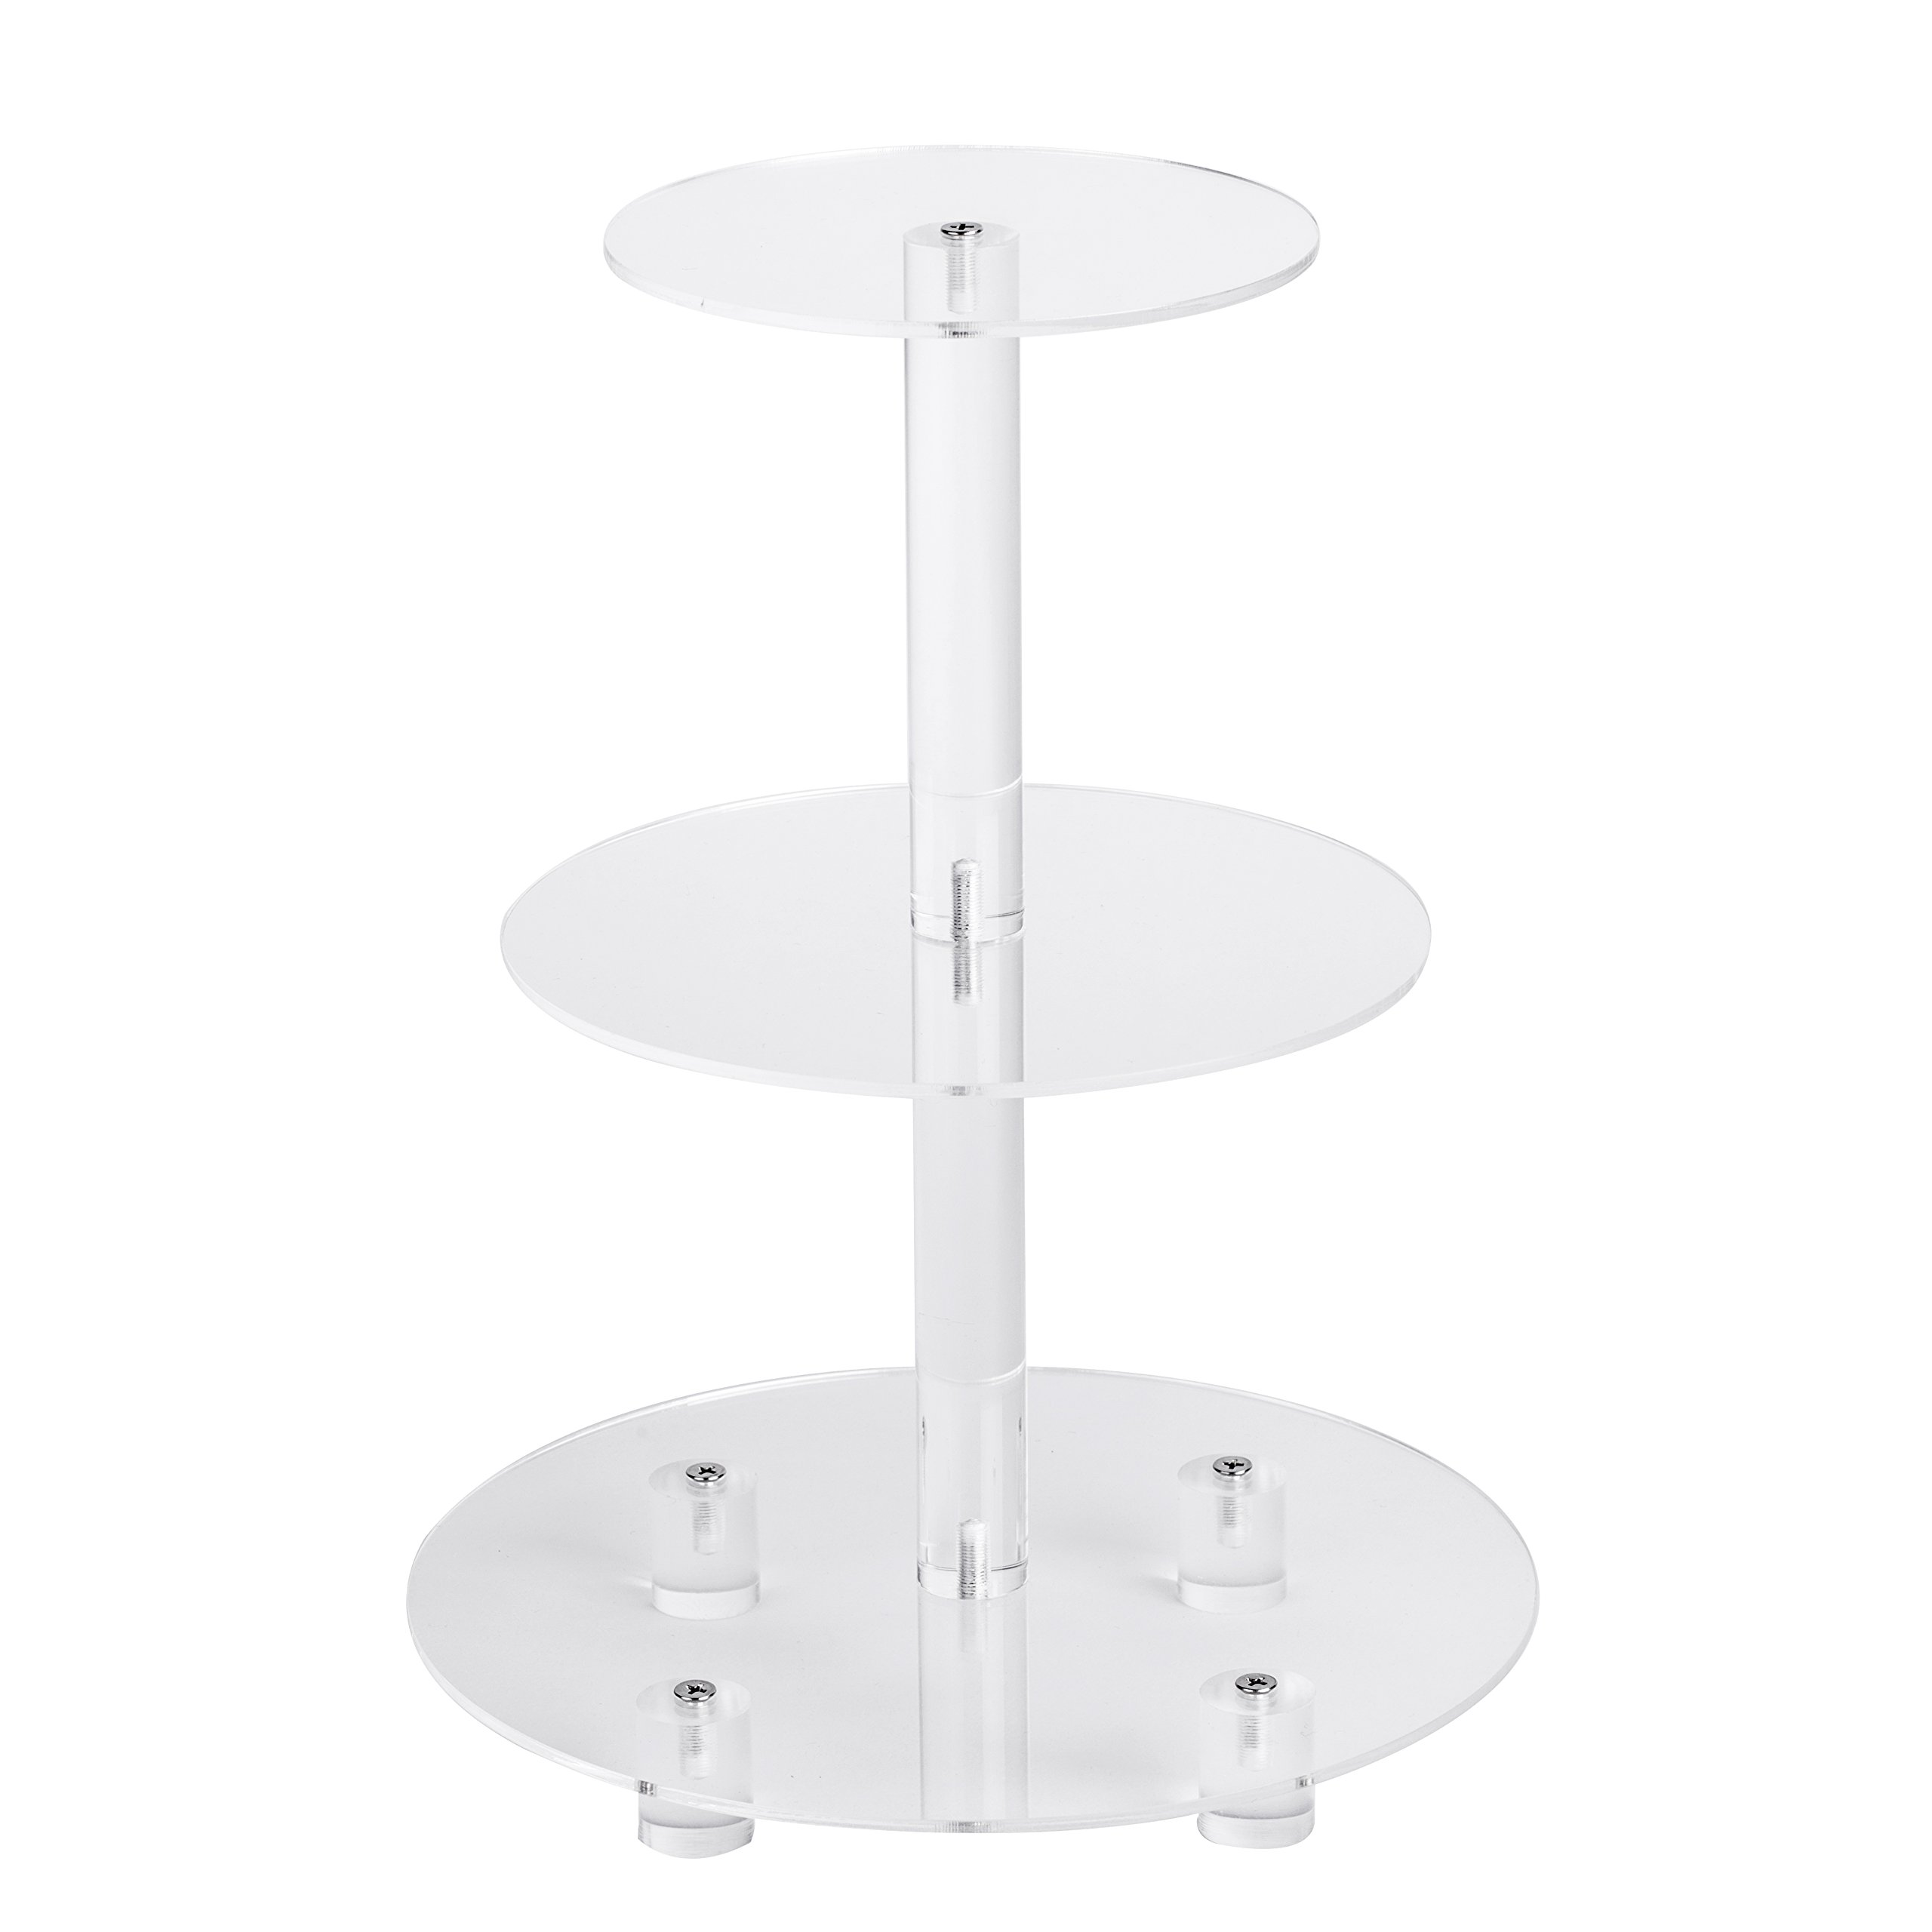 """YestBuy 3 Tier Maypole Round Wedding Party Tree Tower Acrylic Cupcake Display Stand (3 Tier Round with Base(6"""" between 2 layers))"""